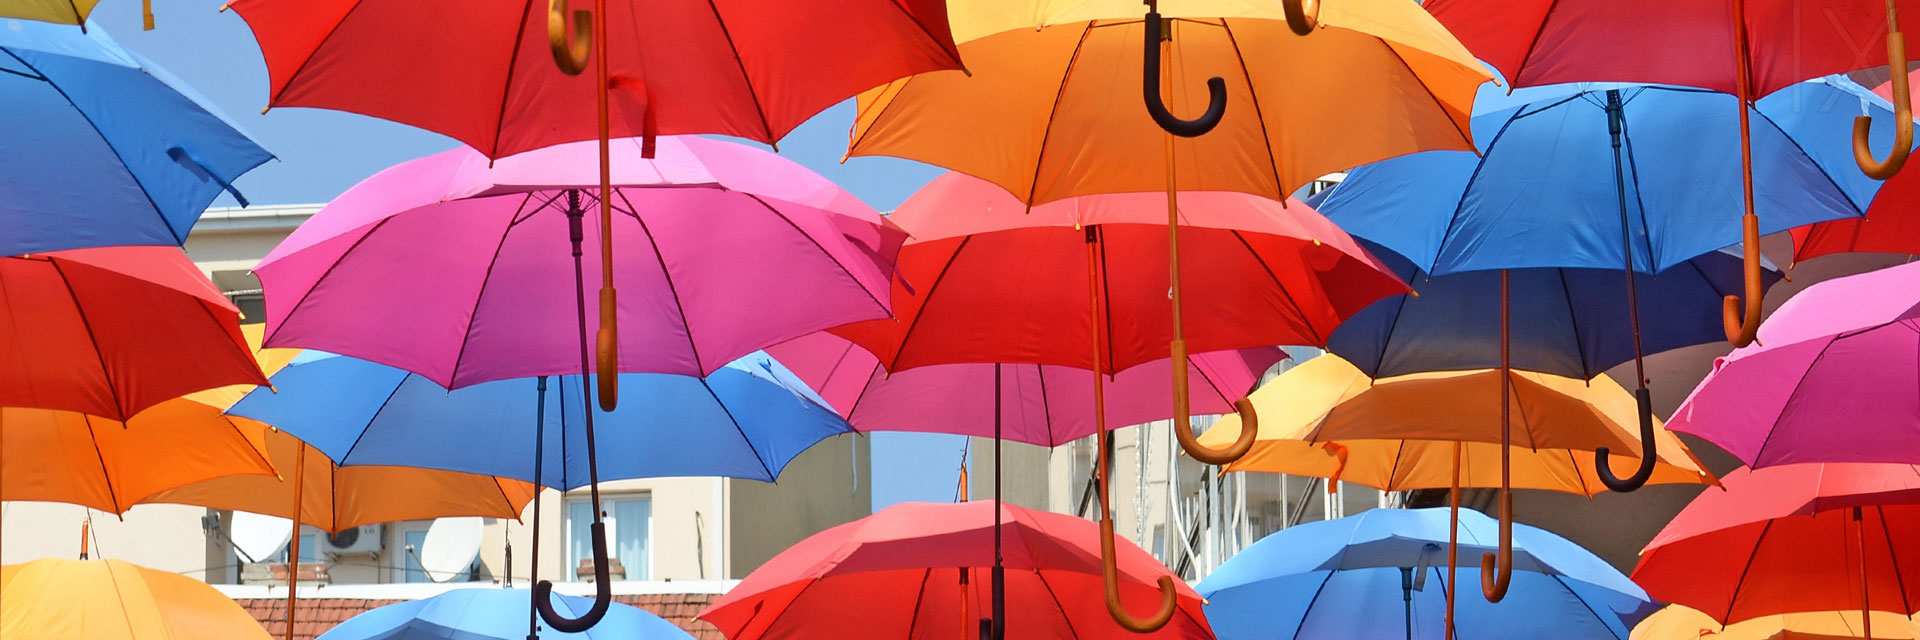 Umbrella Market Report 2018 - News, Size, Prices, Trends, Share